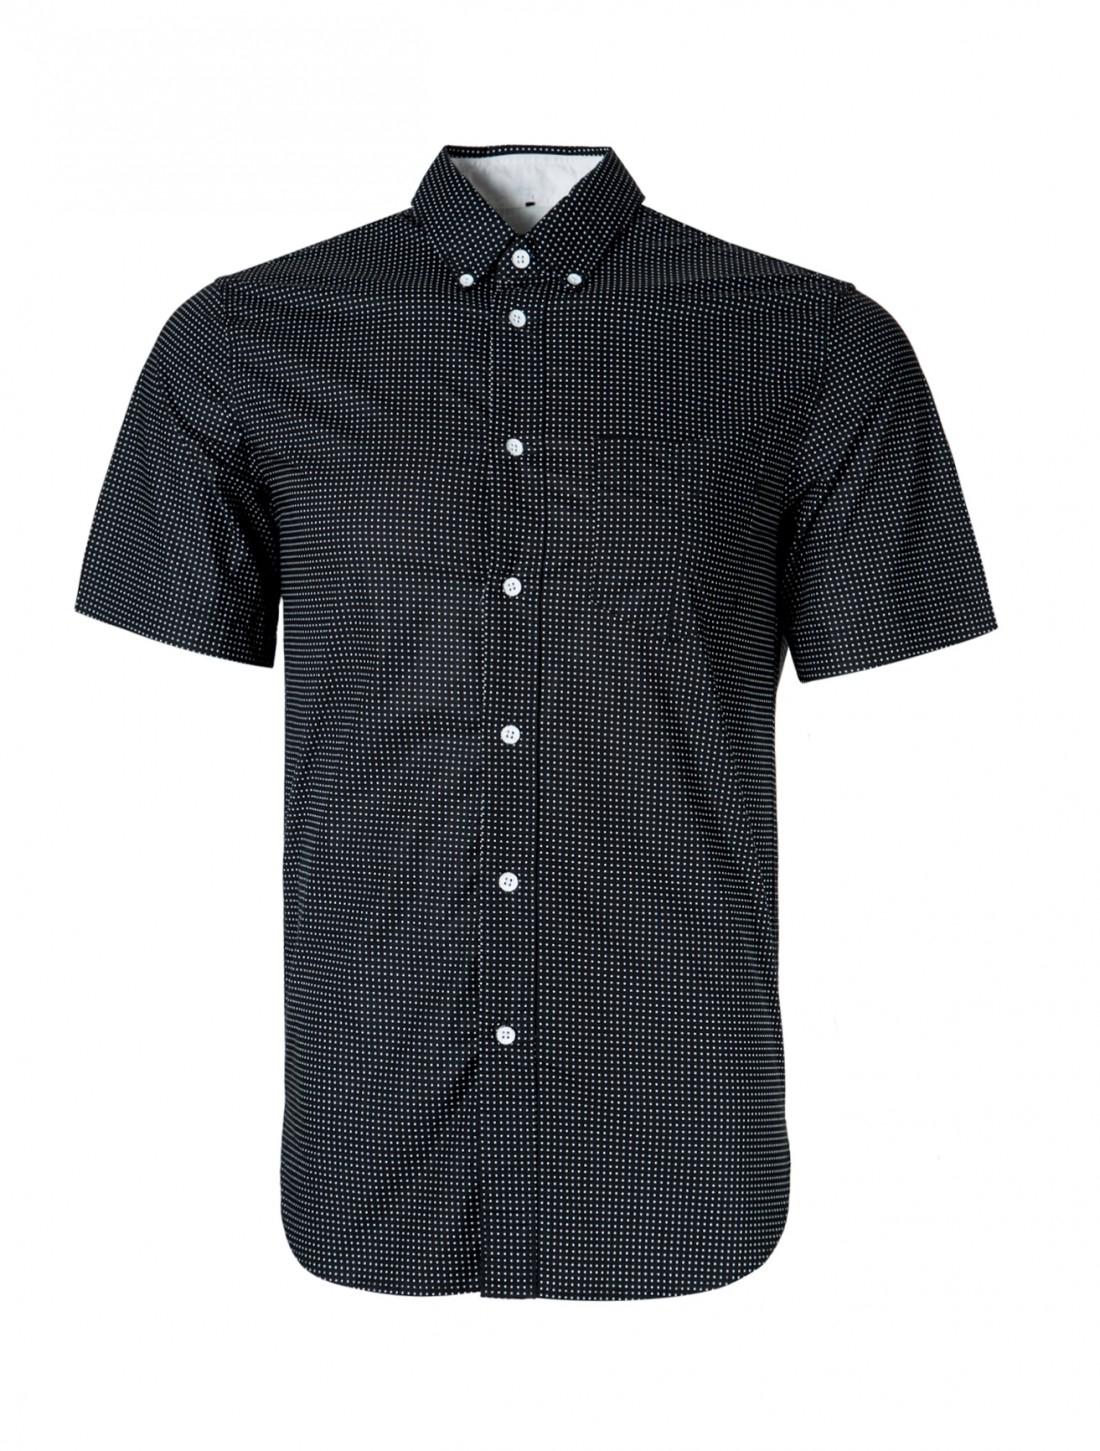 Free shipping BOTH ways on pendleton linen short sleeve button down collar shirt, from our vast selection of styles. Fast delivery, and 24/7/ real-person service with a .